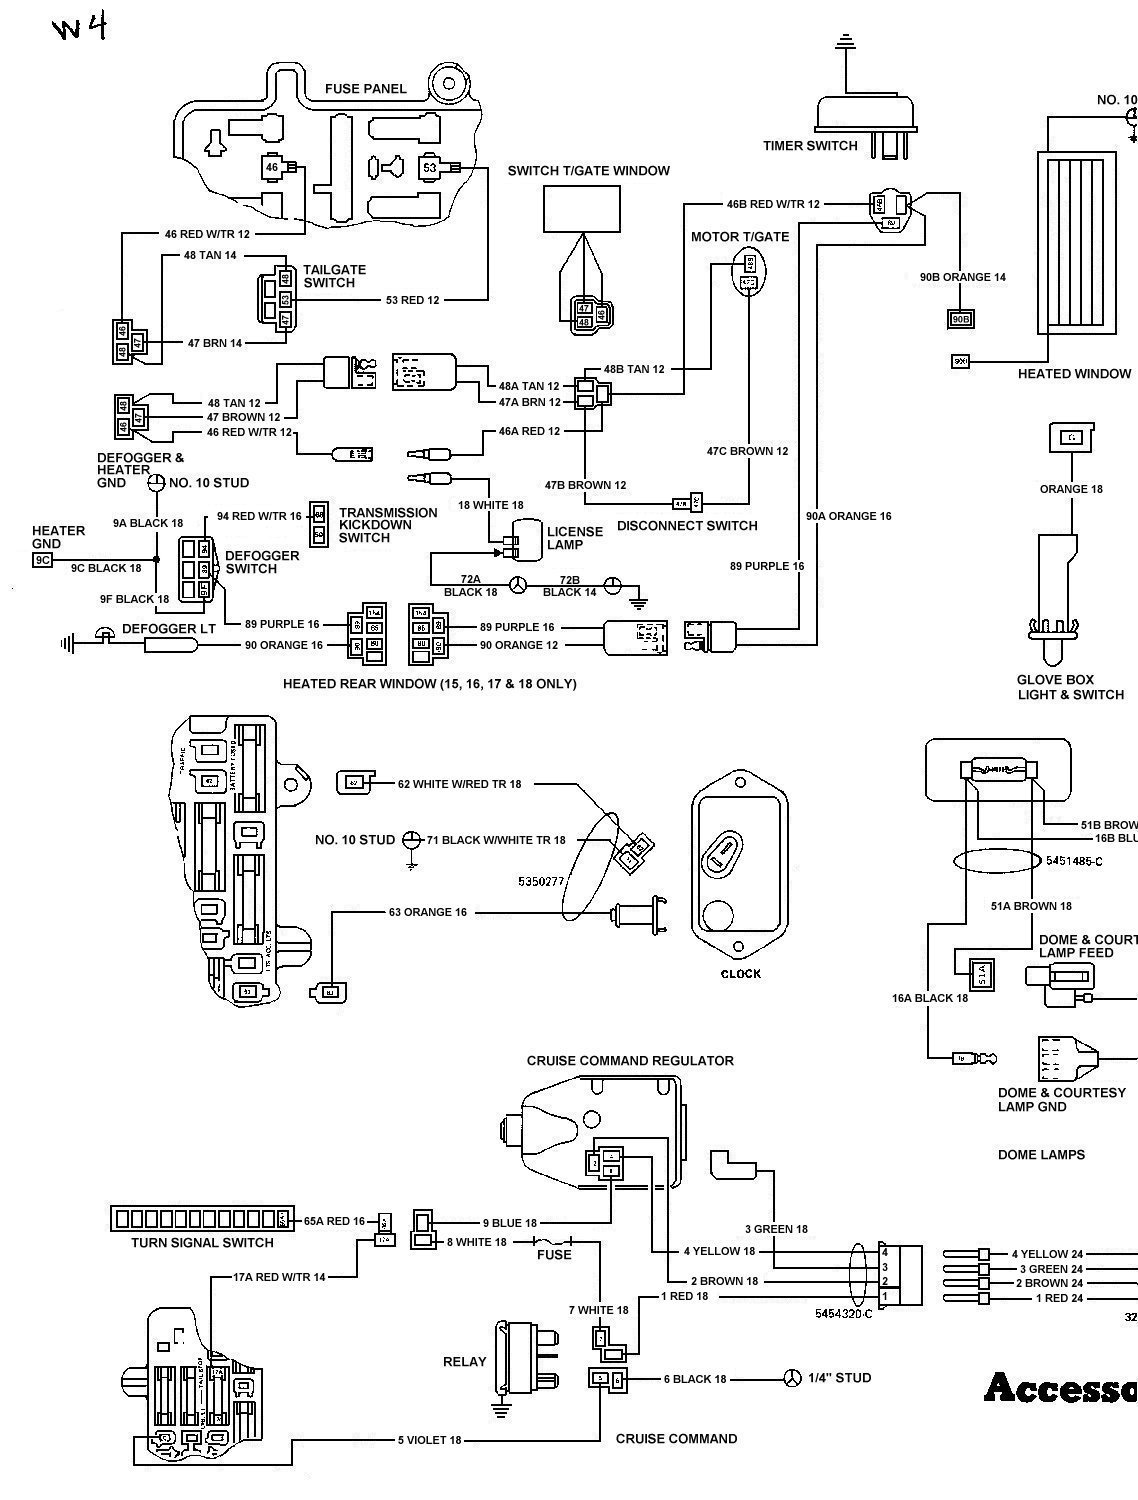 1979 Jeep Cj5 Wiring Diagram from i1.wp.com